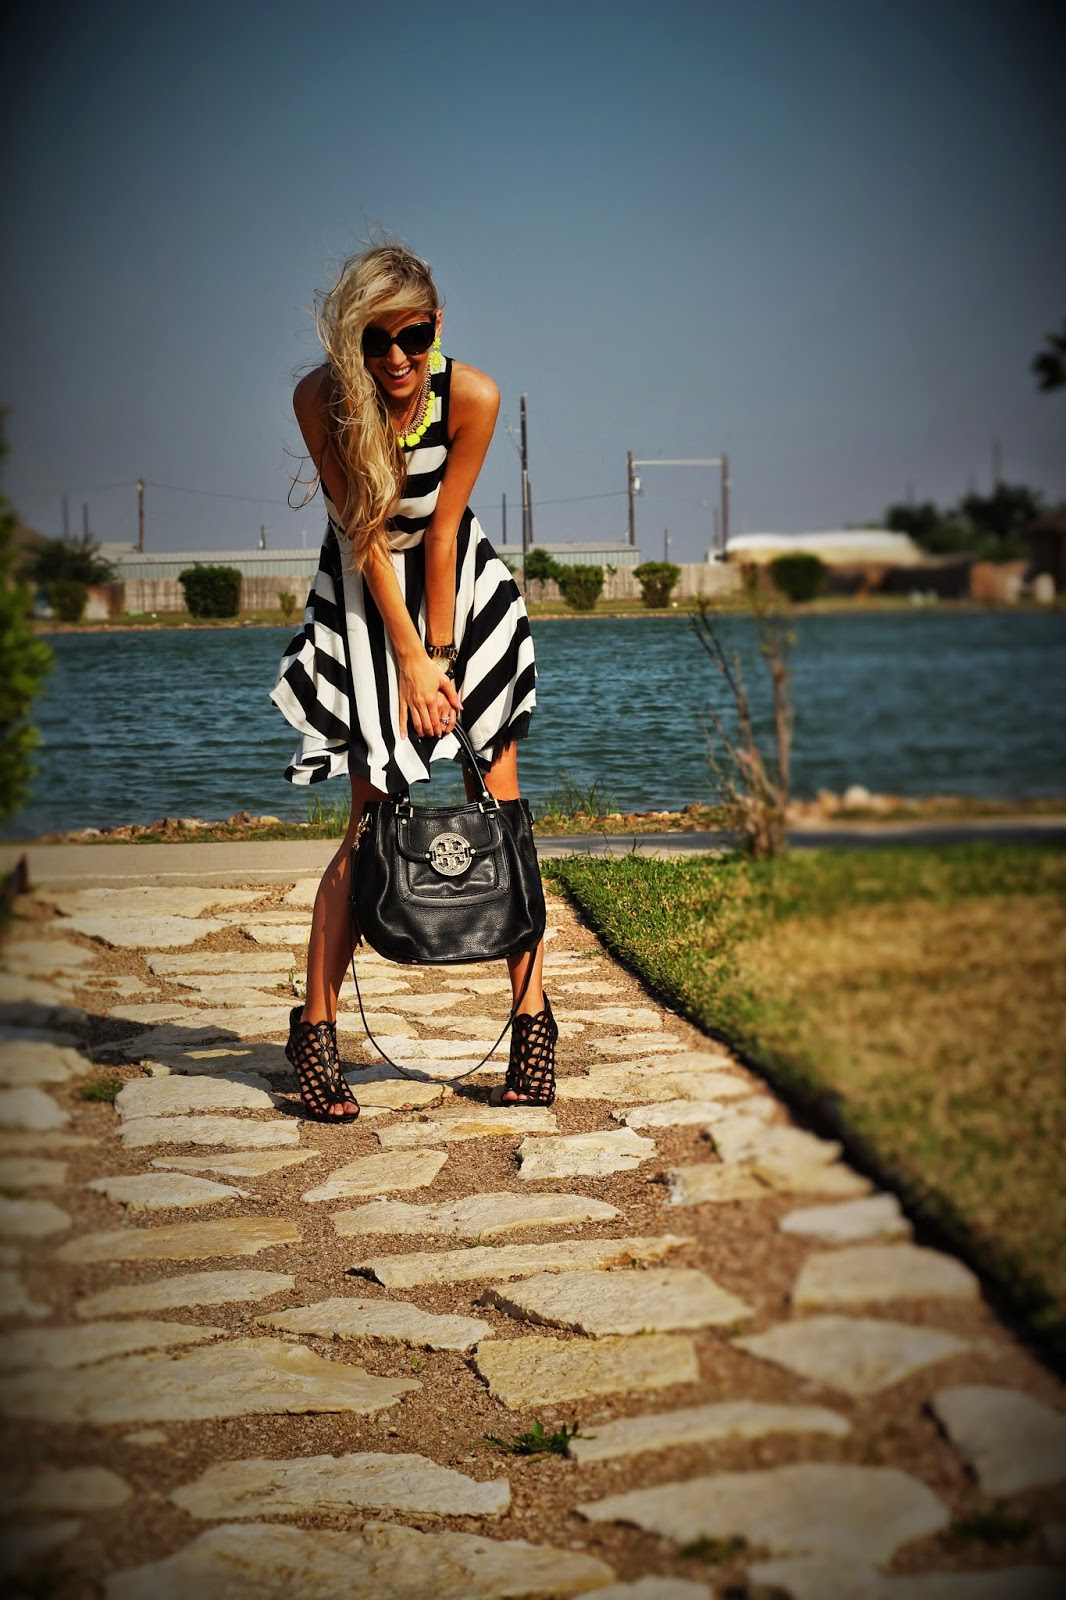 http://www.fabphilosophy.blogspot.com/2014/05/black-white-with-pop-of-color.html